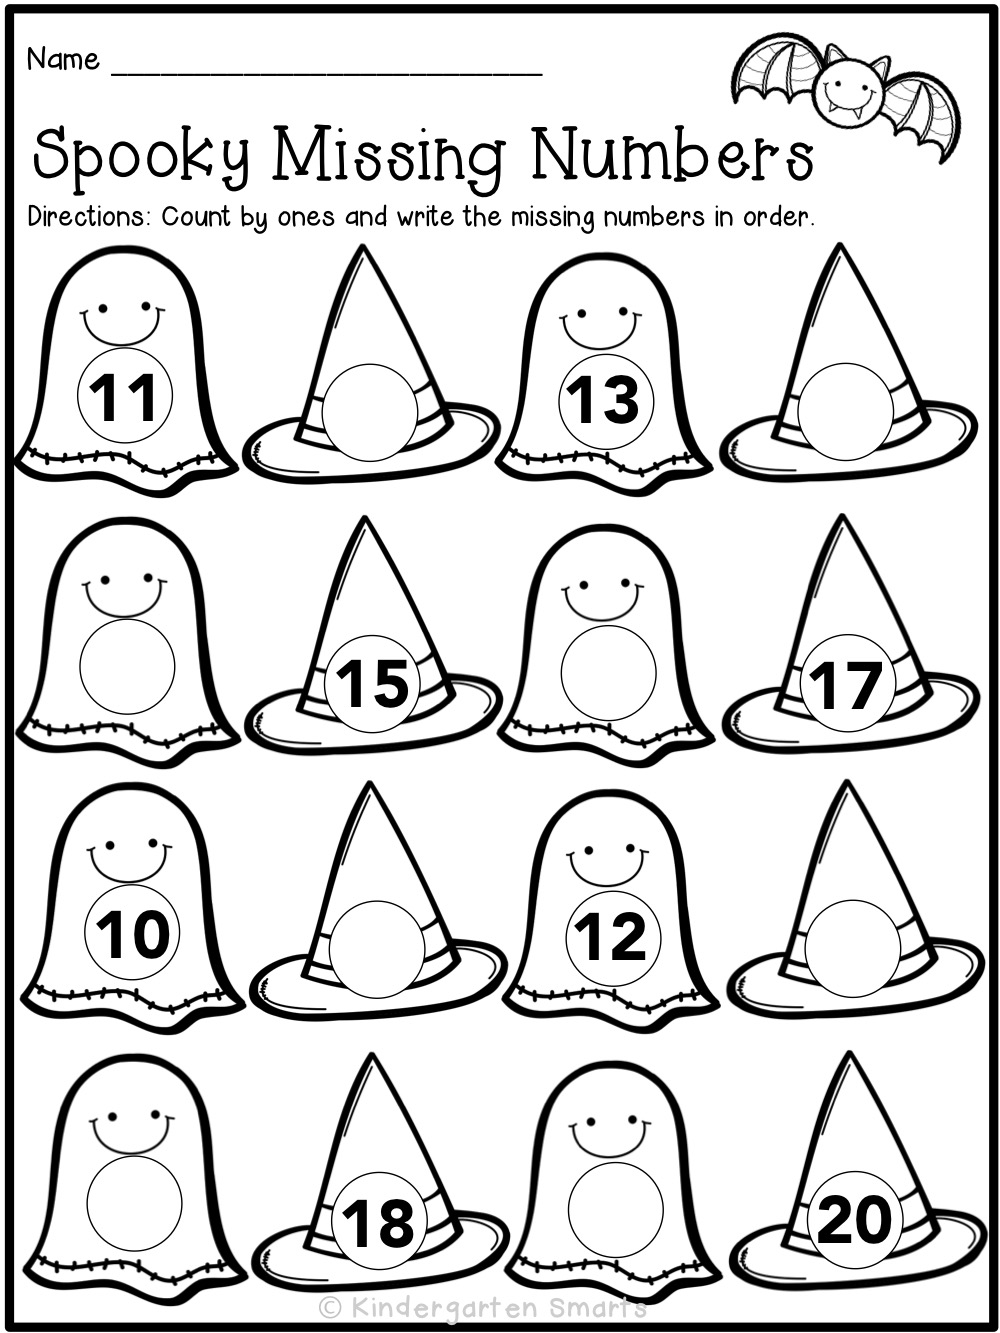 15 Halloween Activities, Worksheets, and Printables for